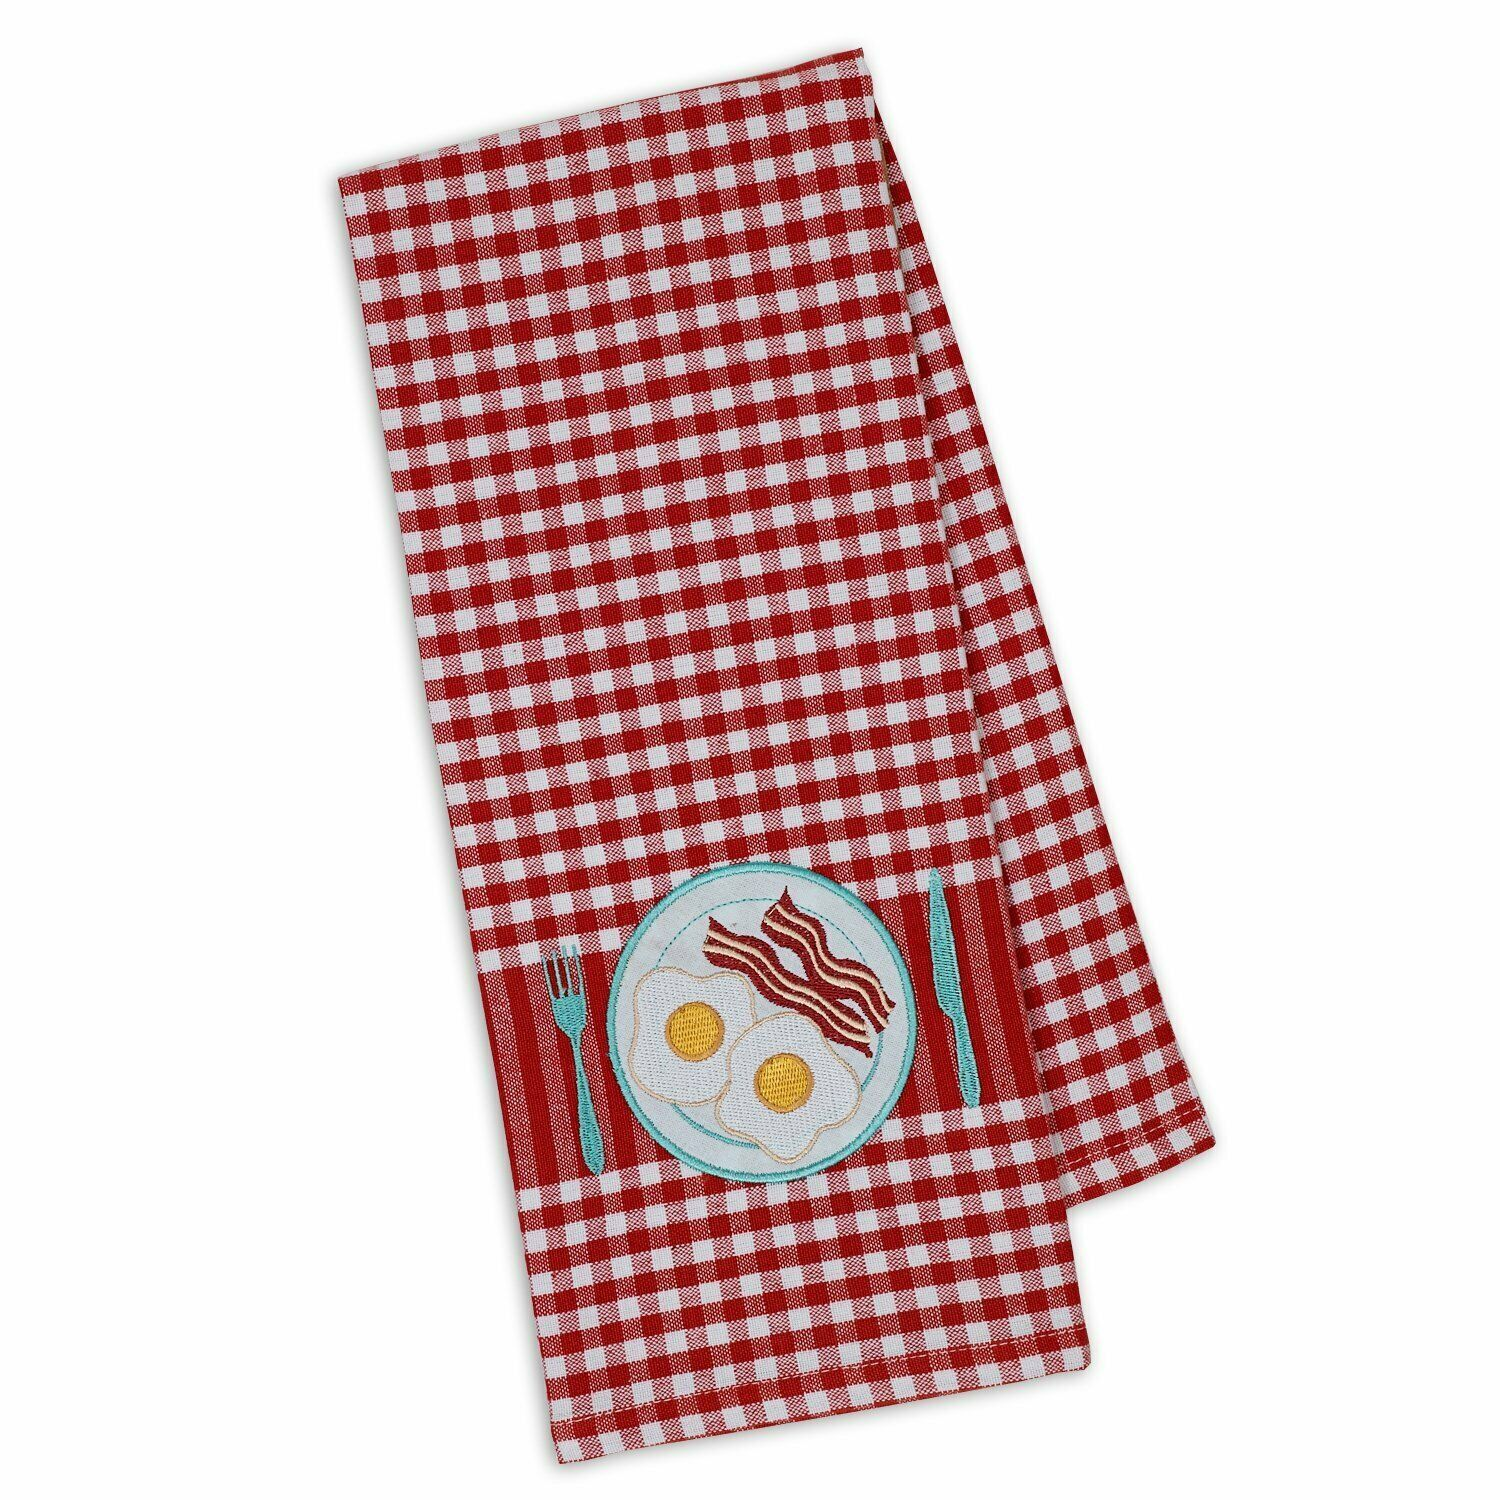 "Primary image for Bacon & Eggs Embellished Kitchen Dish Towel New 18"" x 28"" DII 100% Cotton"